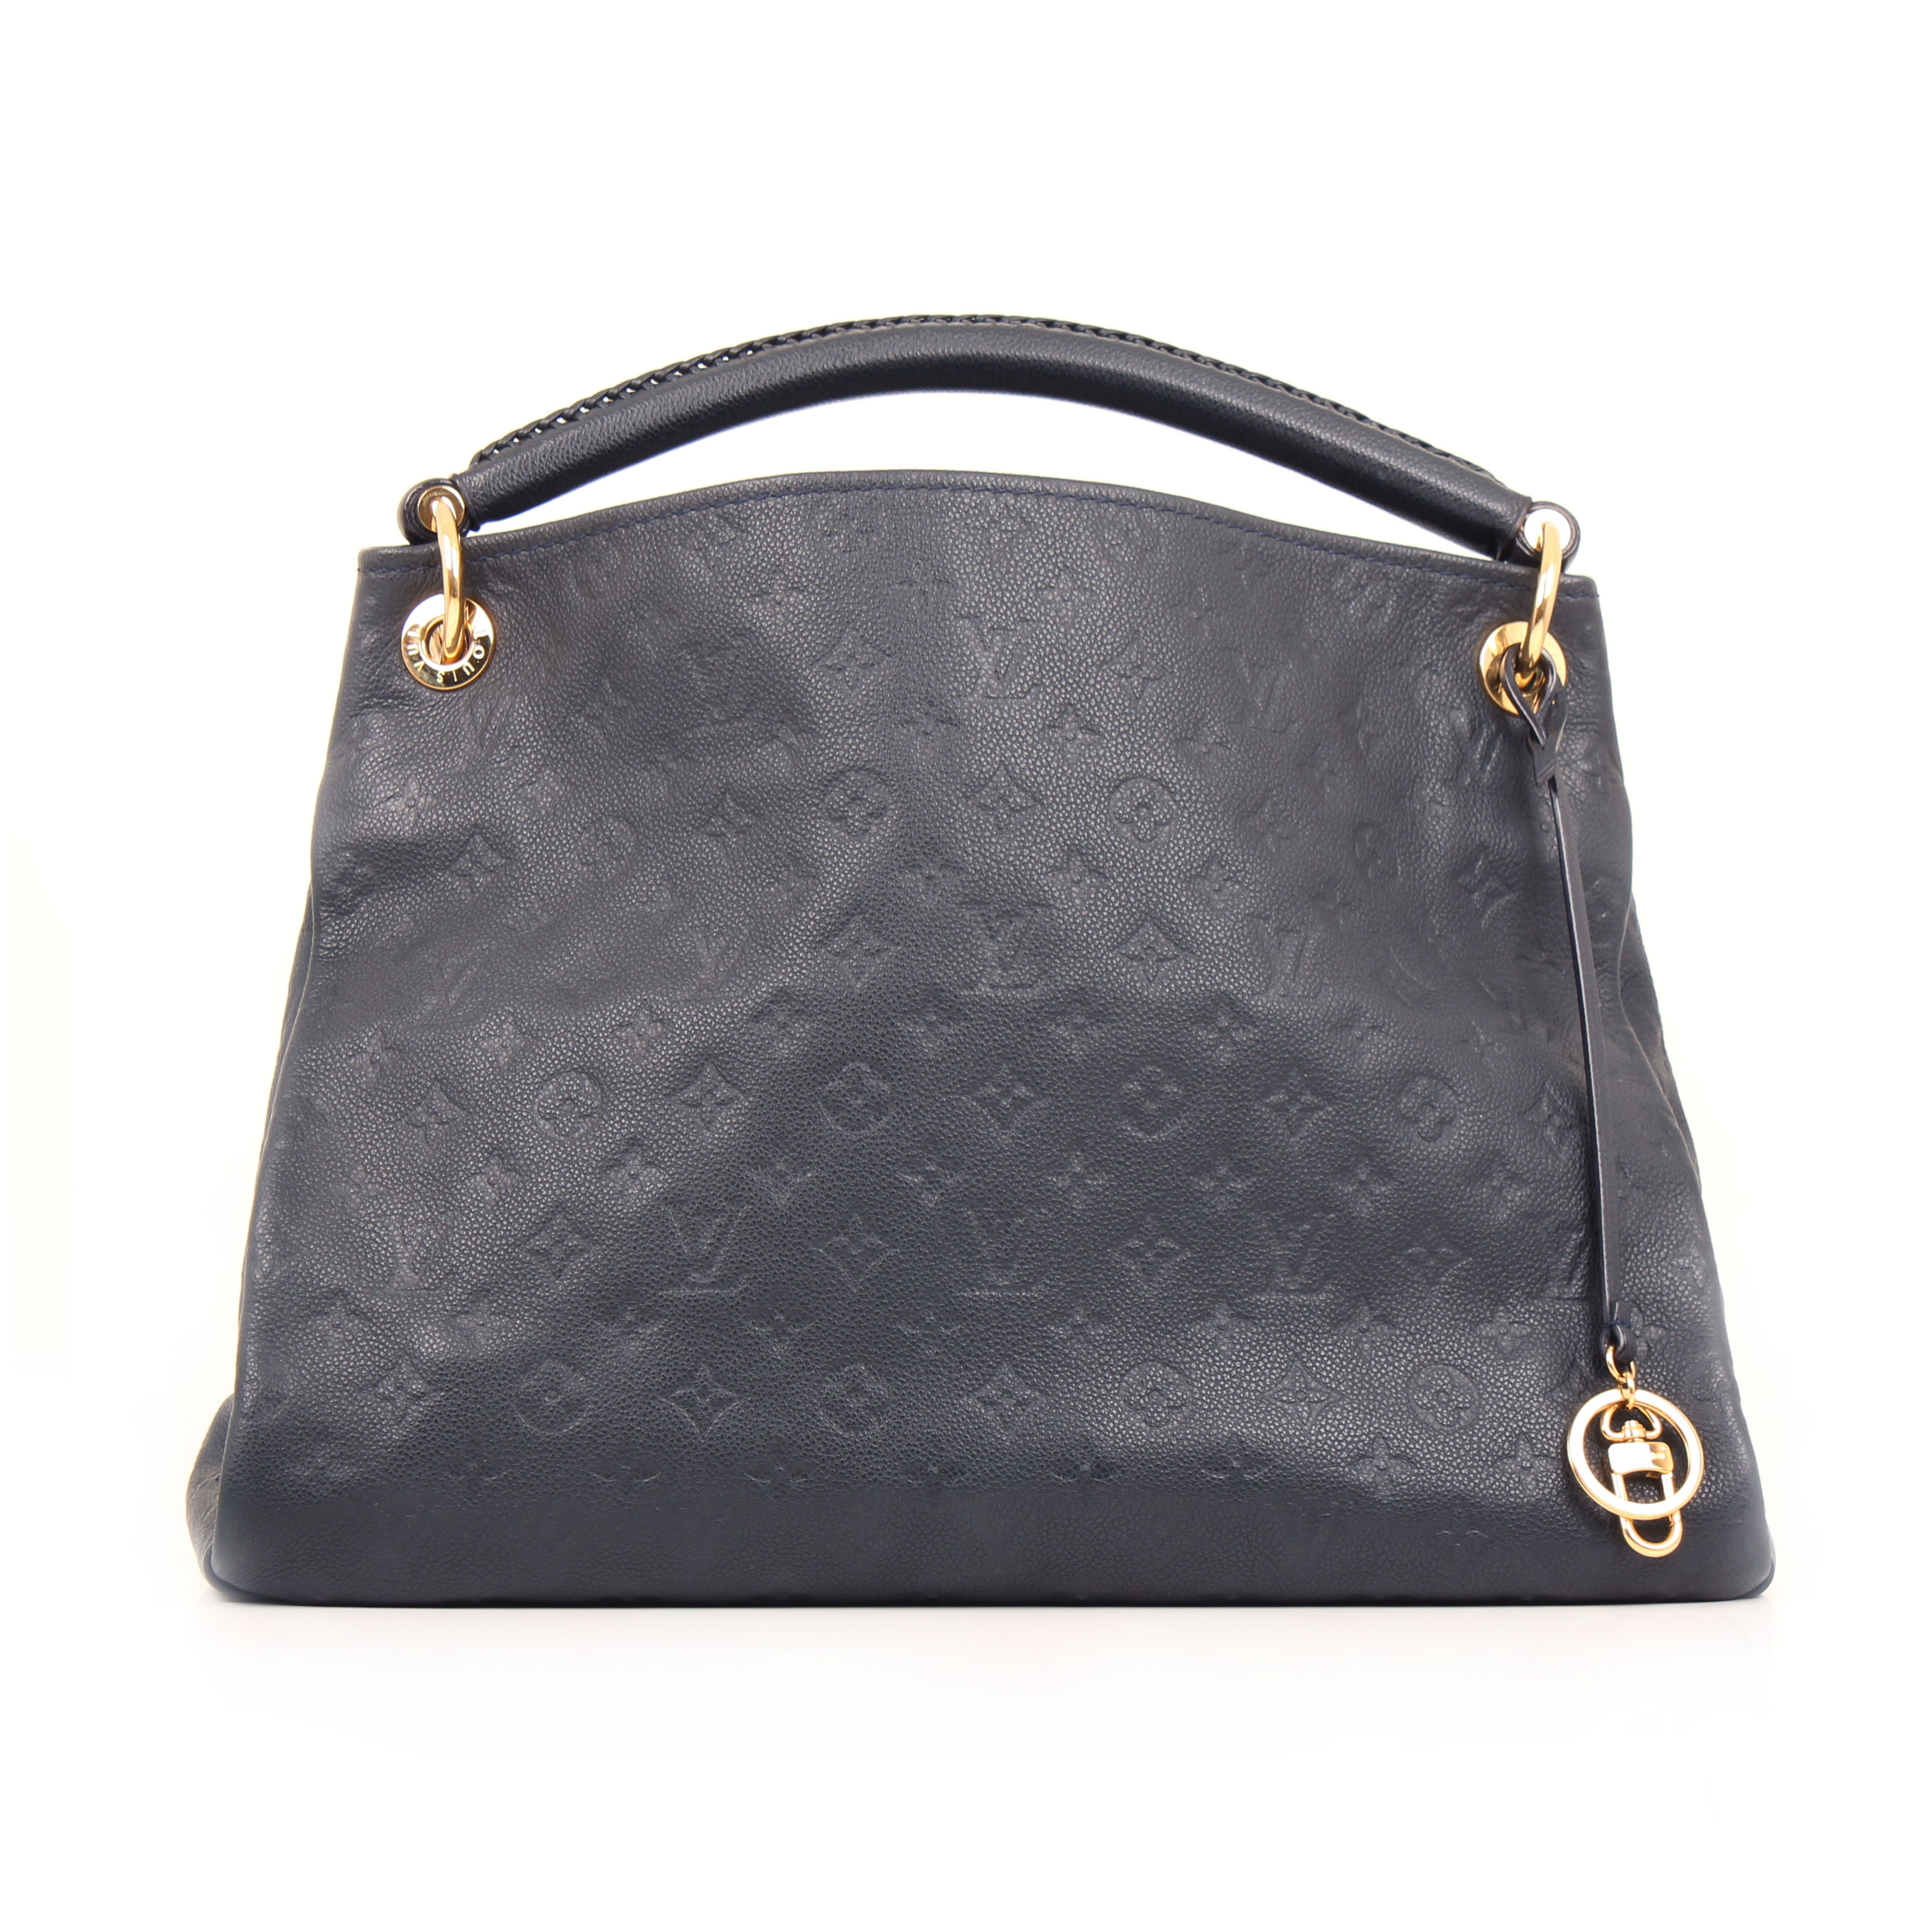 300ba7617611 tote bag louis vuitton artsy mm monogram embossed navy blue front